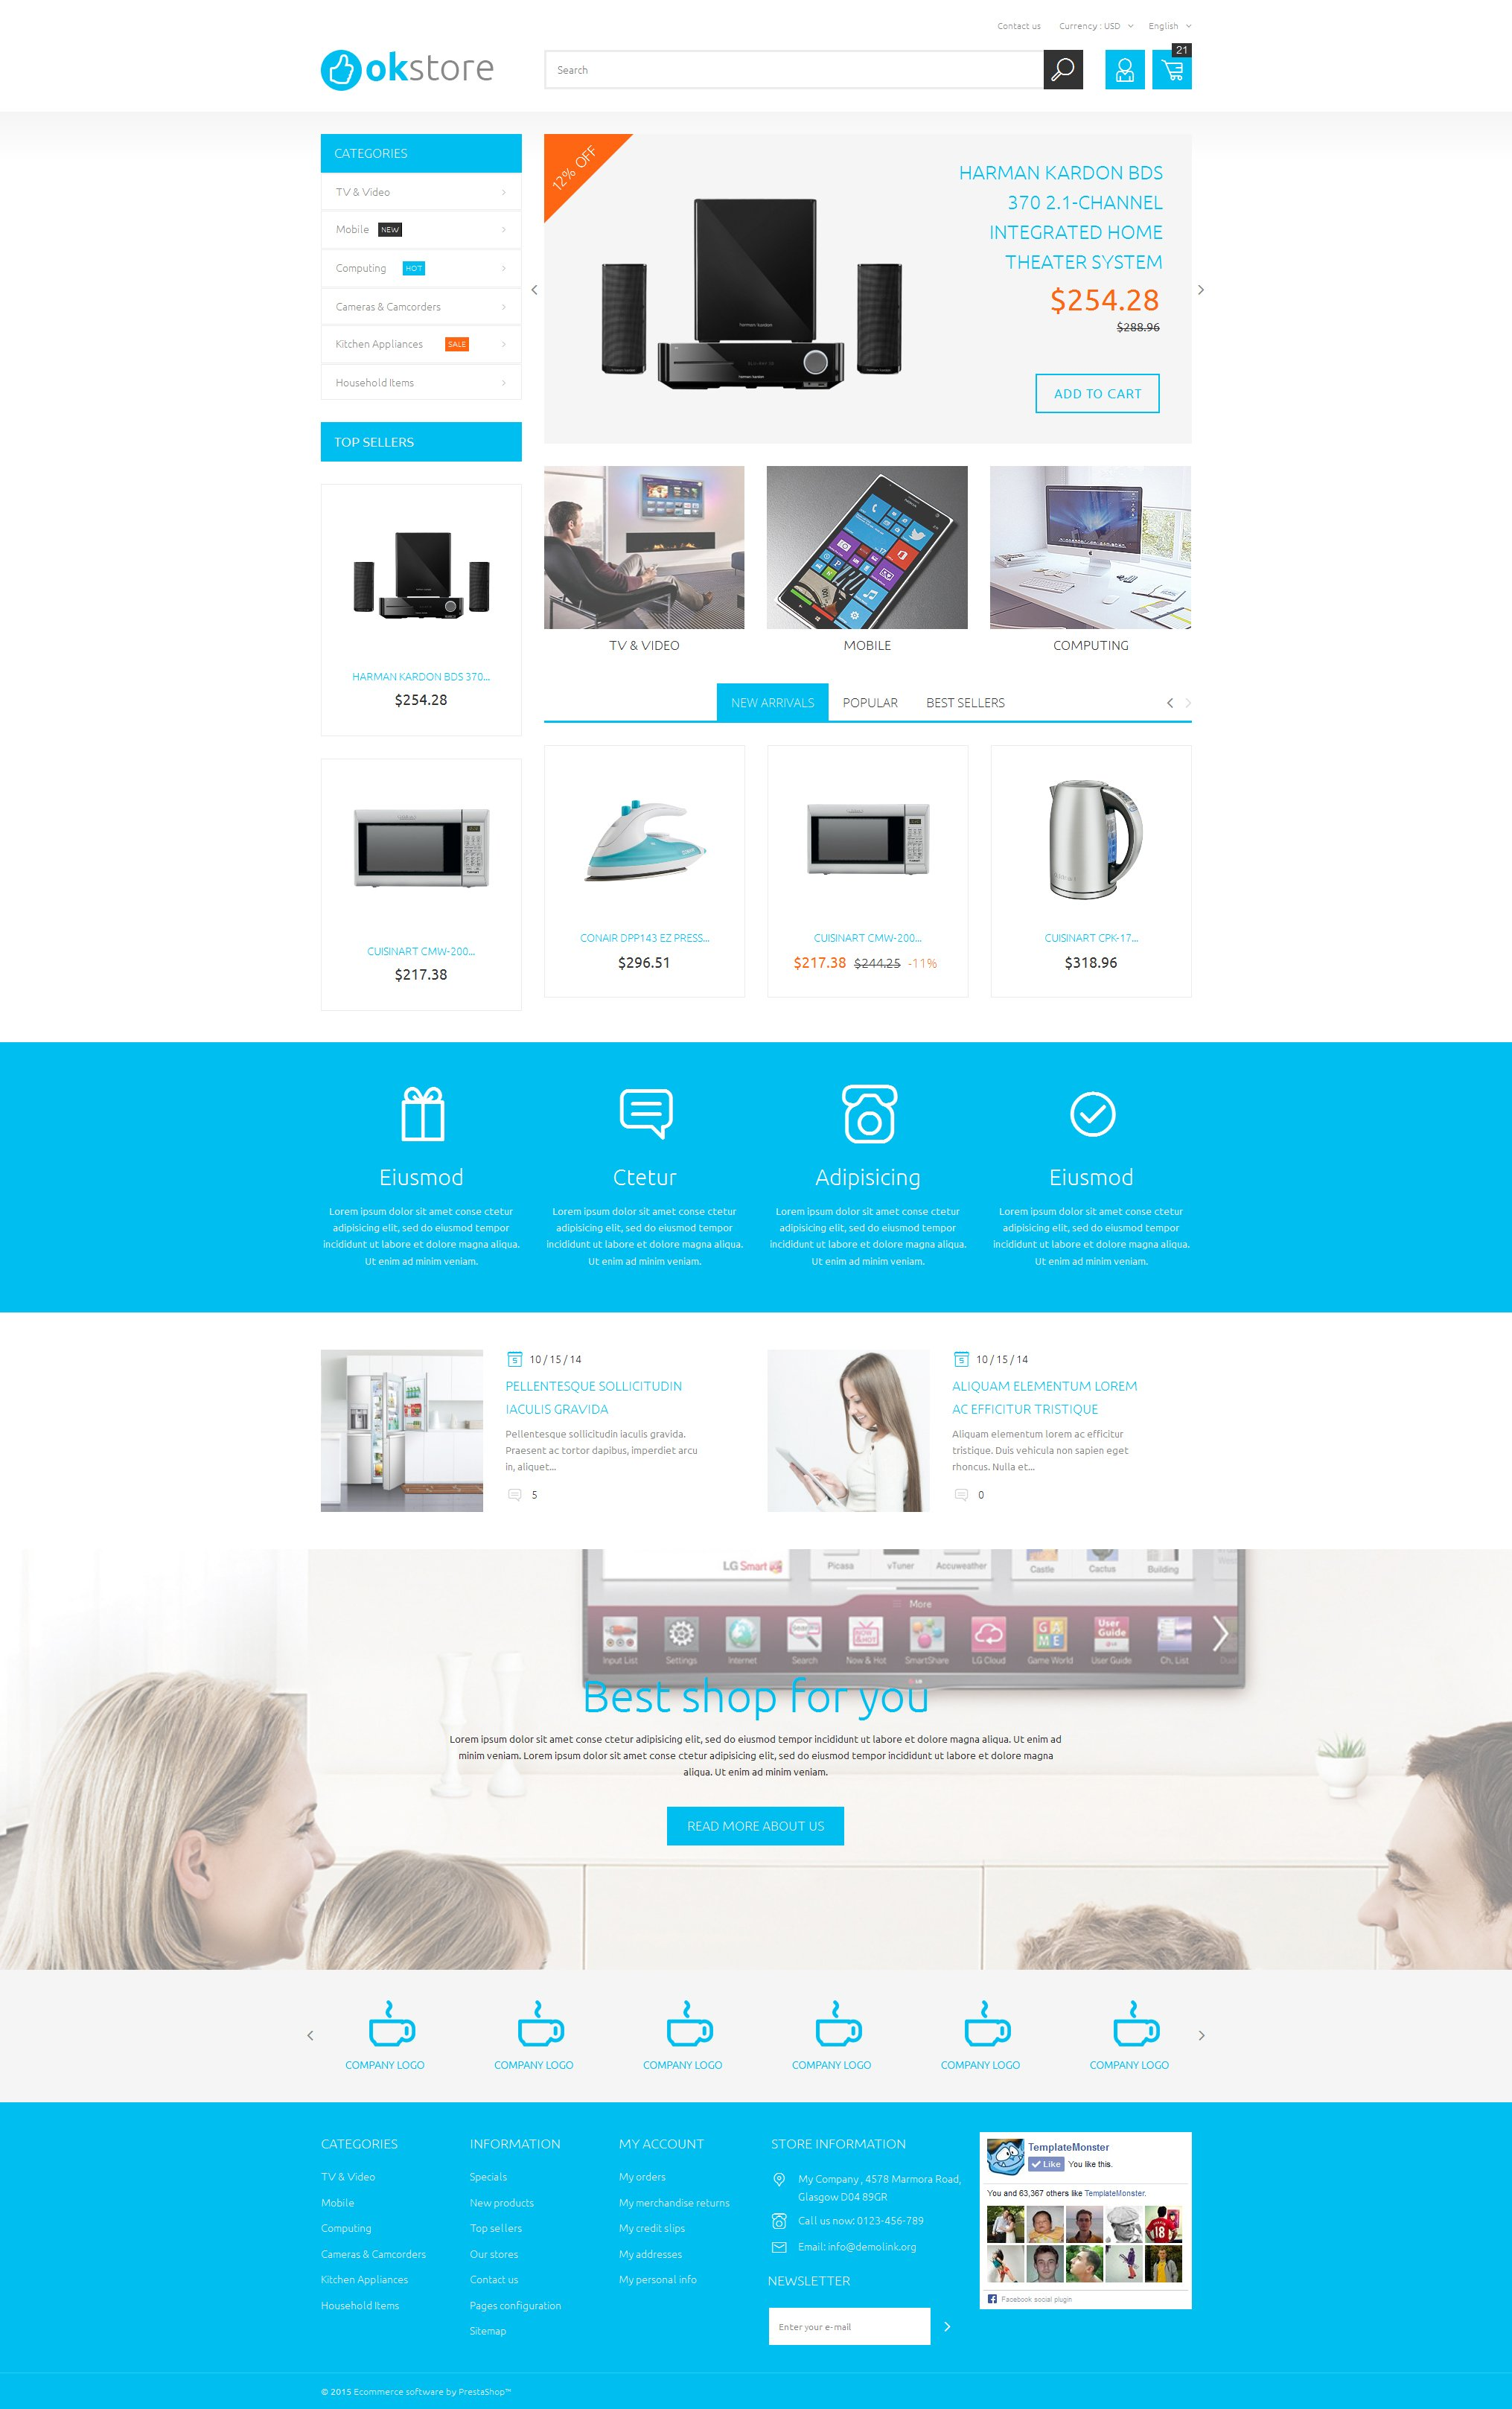 The Electronic Online Shop PrestaShop Design 53604, one of the best PrestaShop themes of its kind (electronics, most popular), also known as electronic online shop PrestaShop template, delivery PrestaShop template, computer PrestaShop template, office PrestaShop template, staff PrestaShop template, printer PrestaShop template, notebook PrestaShop template, laptop shipment PrestaShop template, desktop portable PrestaShop template, scanner PrestaShop template, camera PrestaShop template, monitor PrestaShop template, cable system PrestaShop template, technology PrestaShop template, processor PrestaShop template, installation PrestaShop template, hardware PrestaShop template, input PrestaShop template, device PrestaShop template, memory PrestaShop template, server PrestaShop template, accessory PrestaShop template, wireless PrestaShop template, PC connection and related with electronic online shop, delivery, computer, office, staff, printer, notebook, laptop shipment, desktop portable, scanner, camera, monitor, cable system, technology, processor, installation, hardware, input, device, memory, server, accessory, wireless, PC connection, etc.